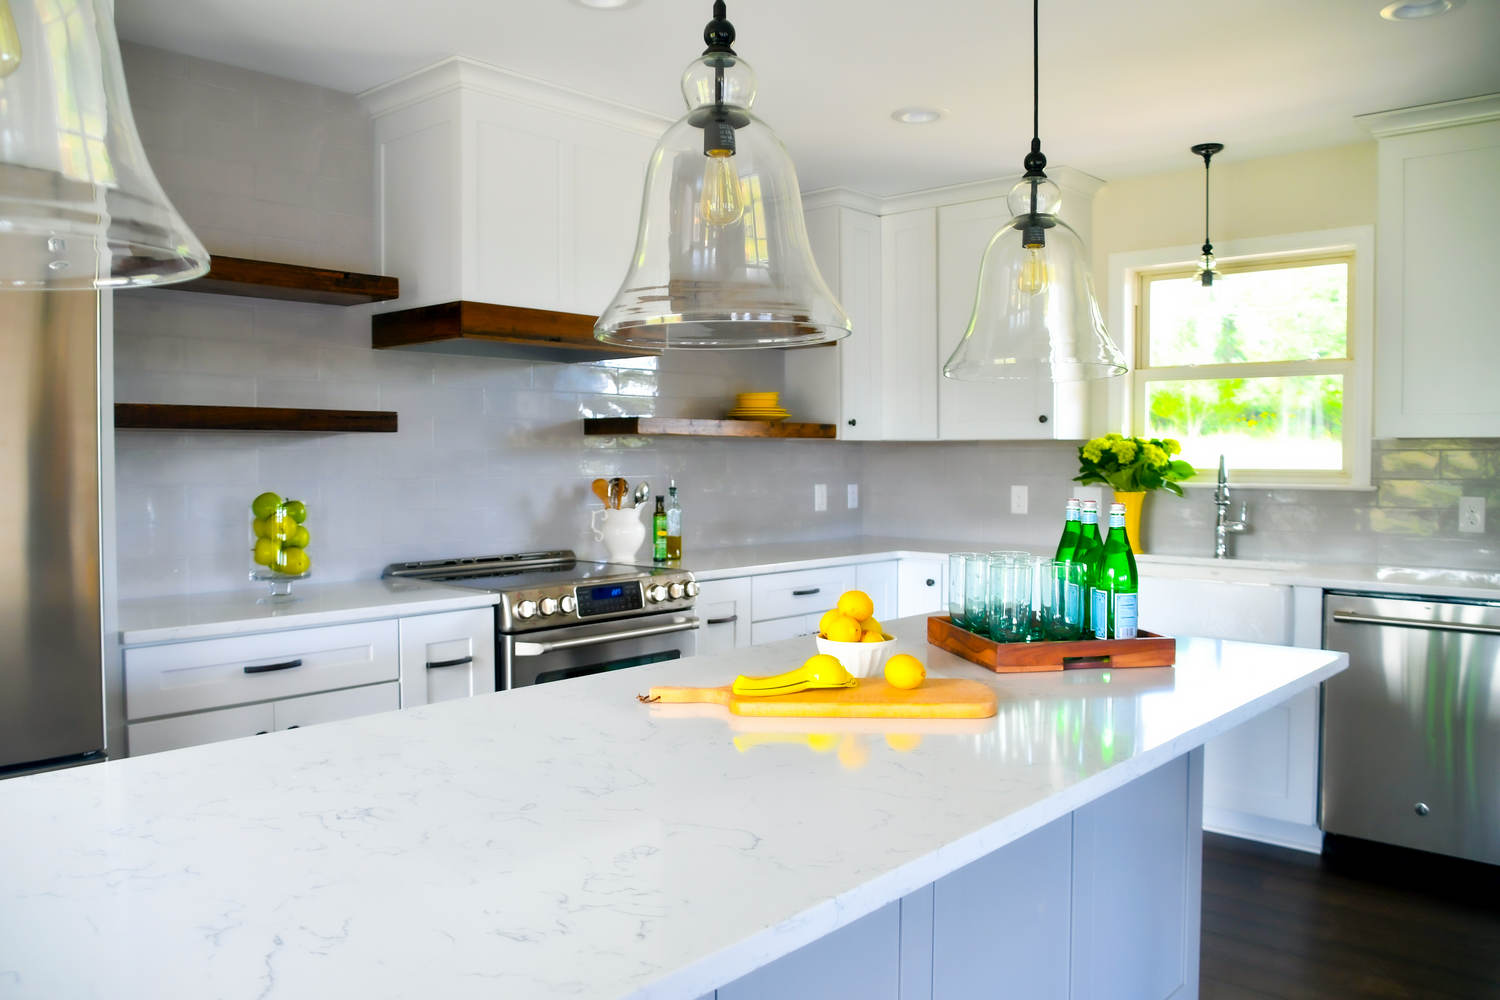 bright-kitchen-in-a-new-home-with-open-concept-lay-UP3F48V